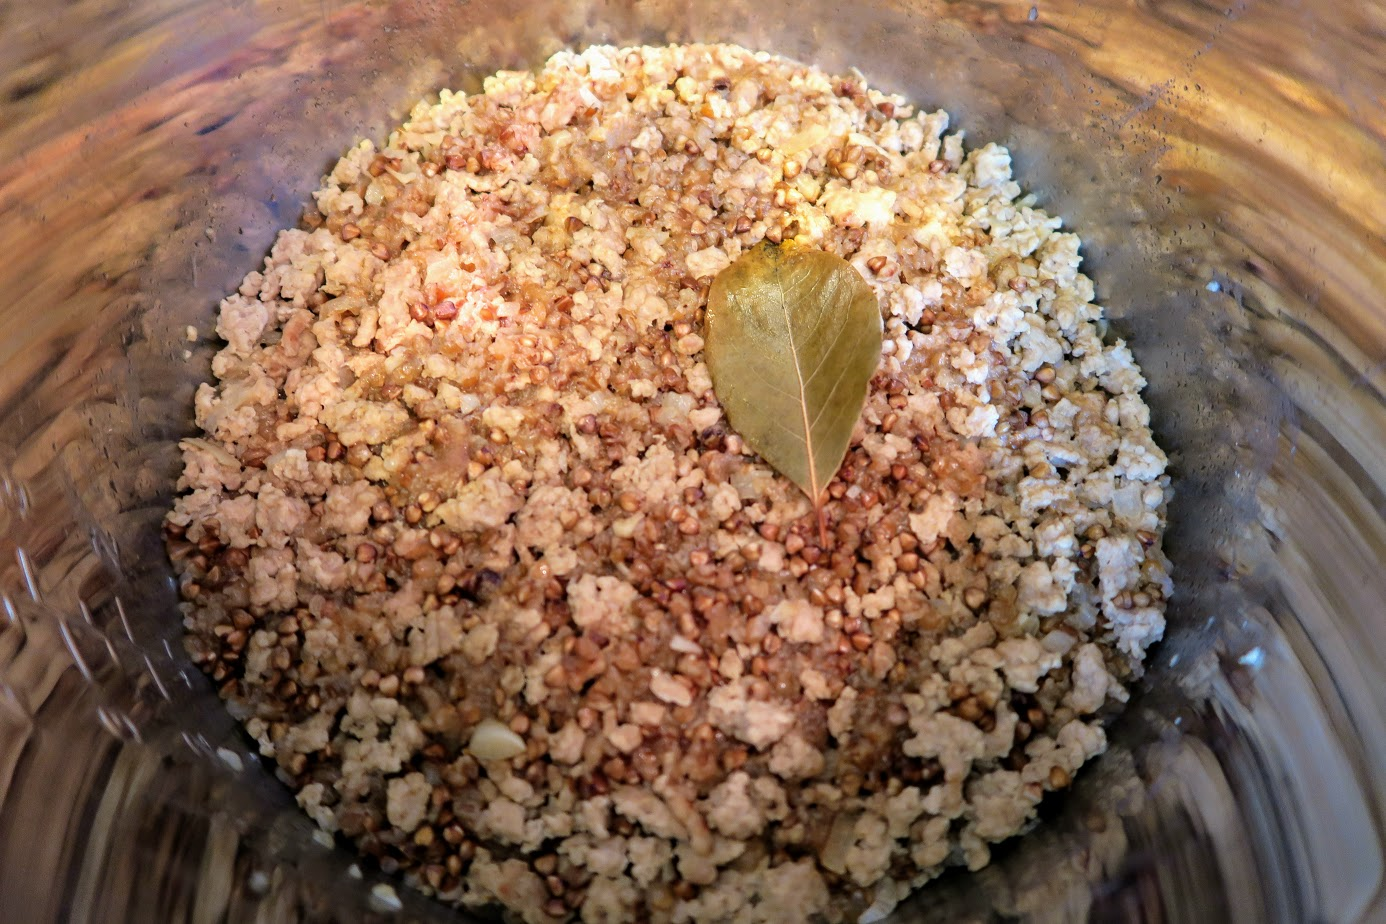 Cooked filling of buckwheat and meat (that rhymes!) inside the Instant Pot with the bay leaf on top